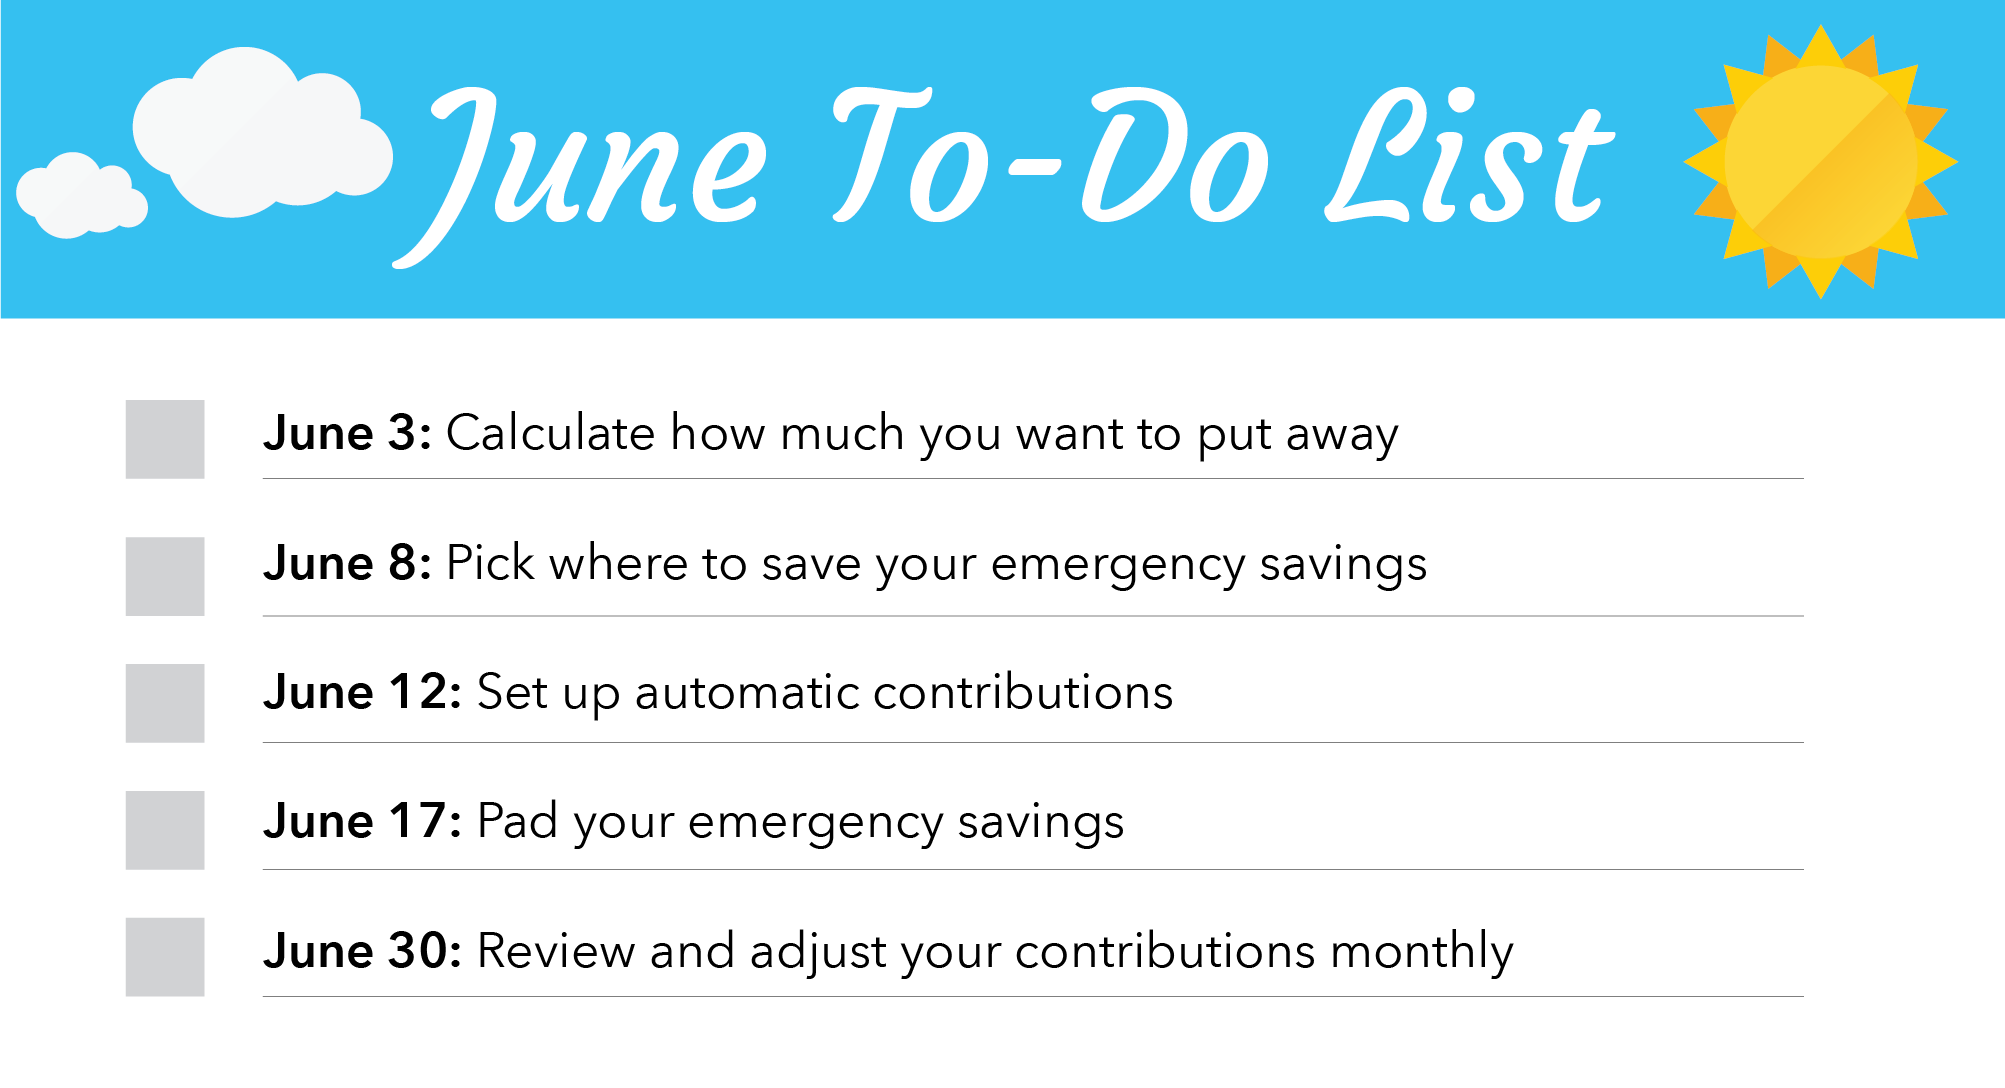 June Financial To-Do List + Calendar